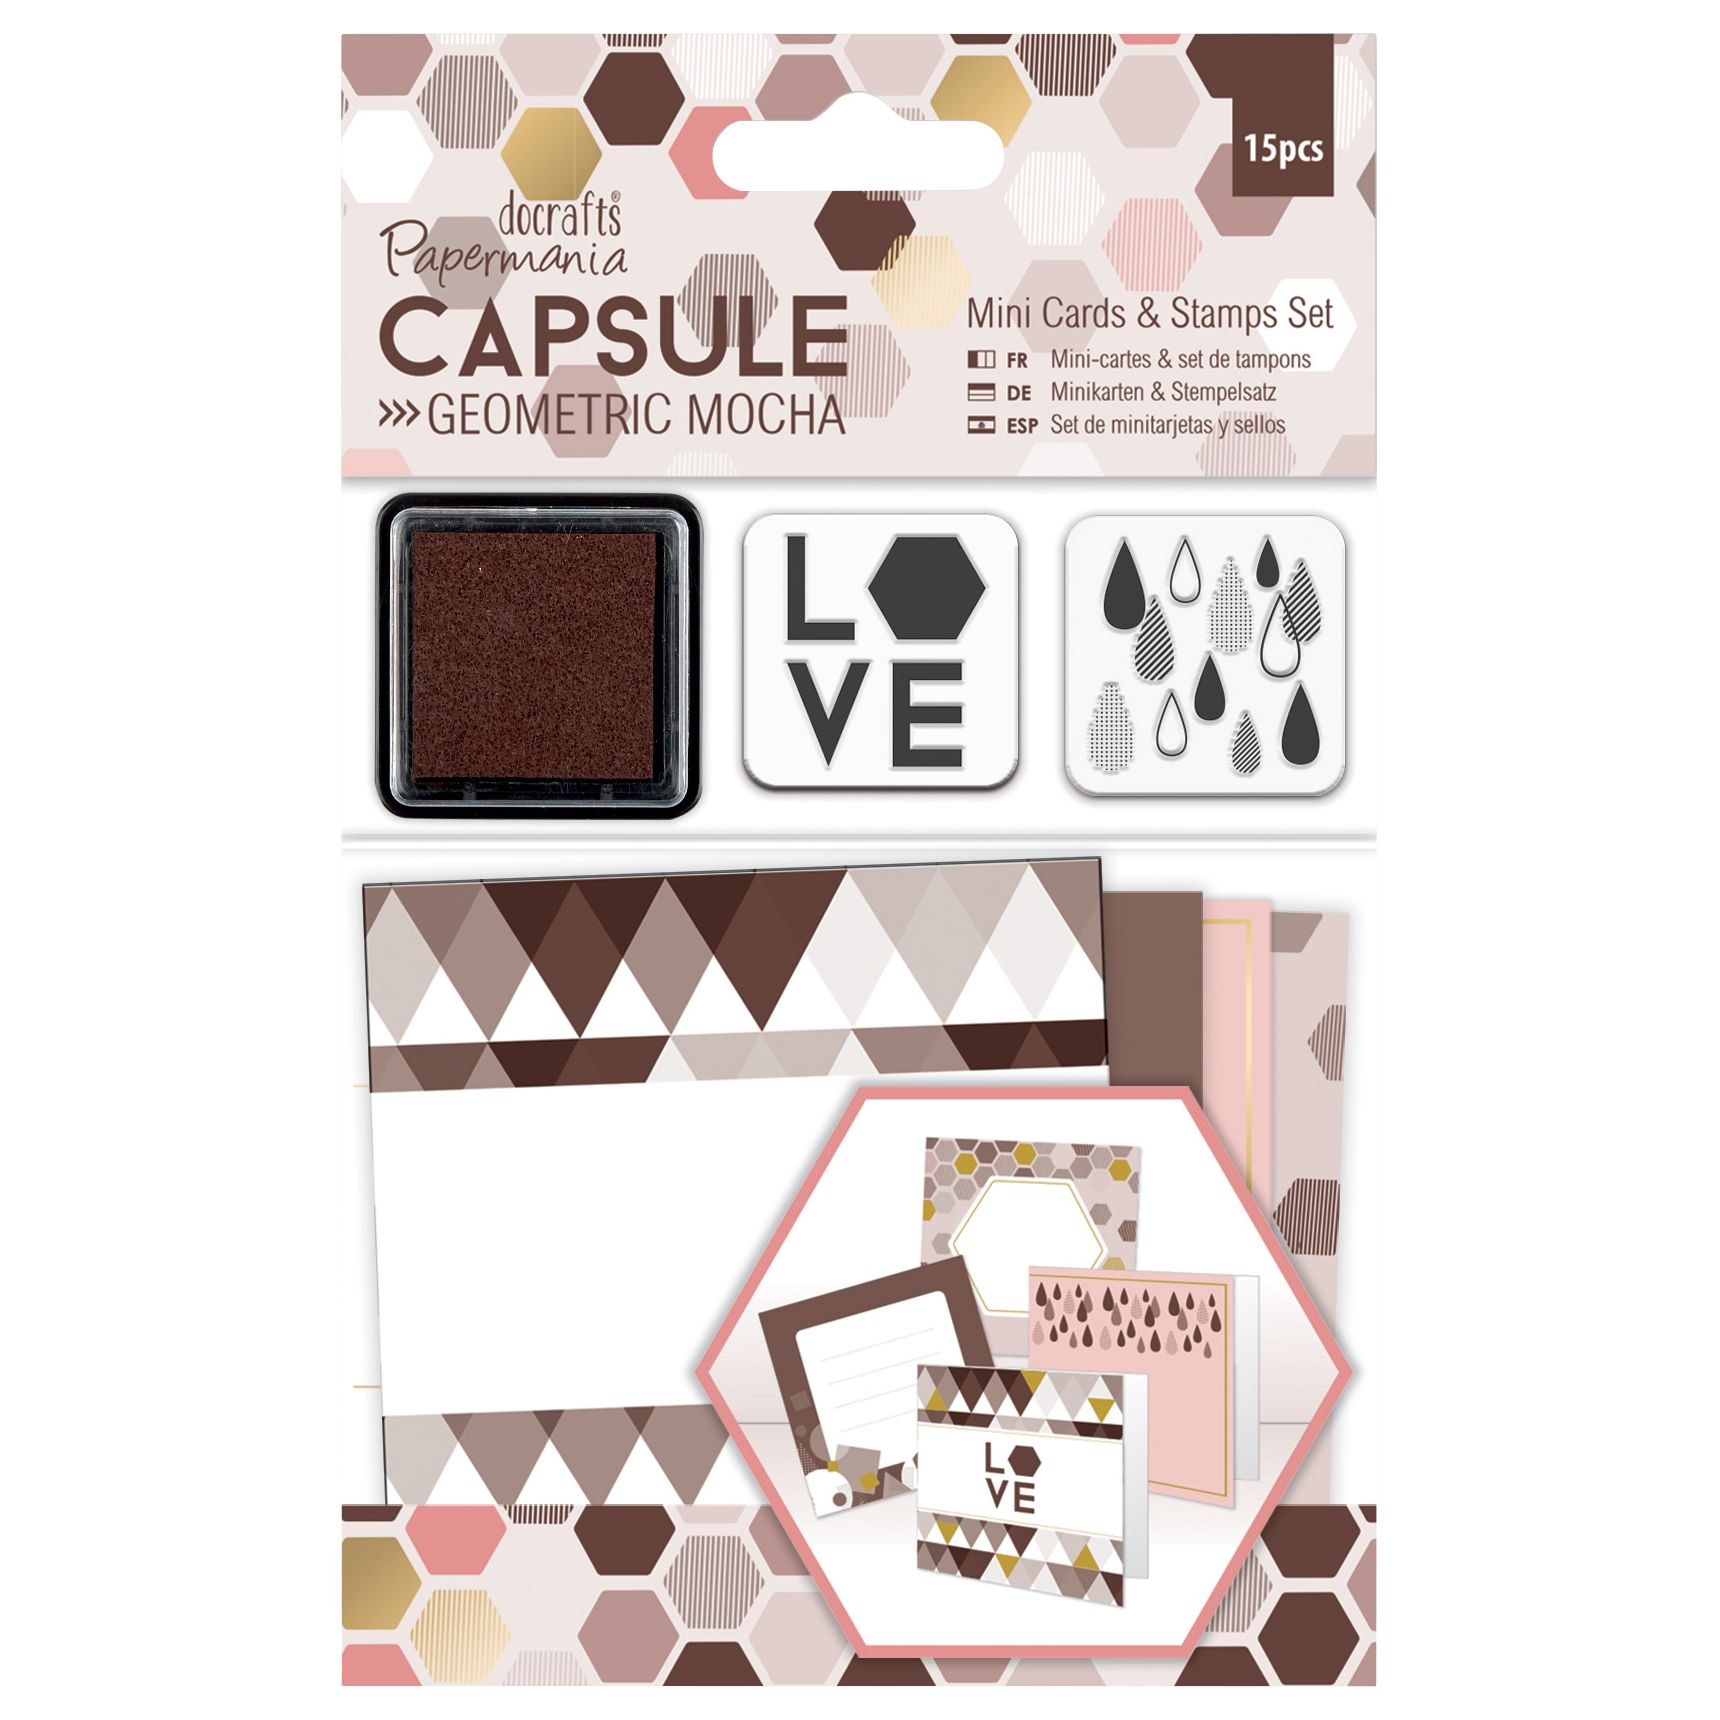 DoCrafts Docrafts Mini Cards and Stamps Set, Pack of 15